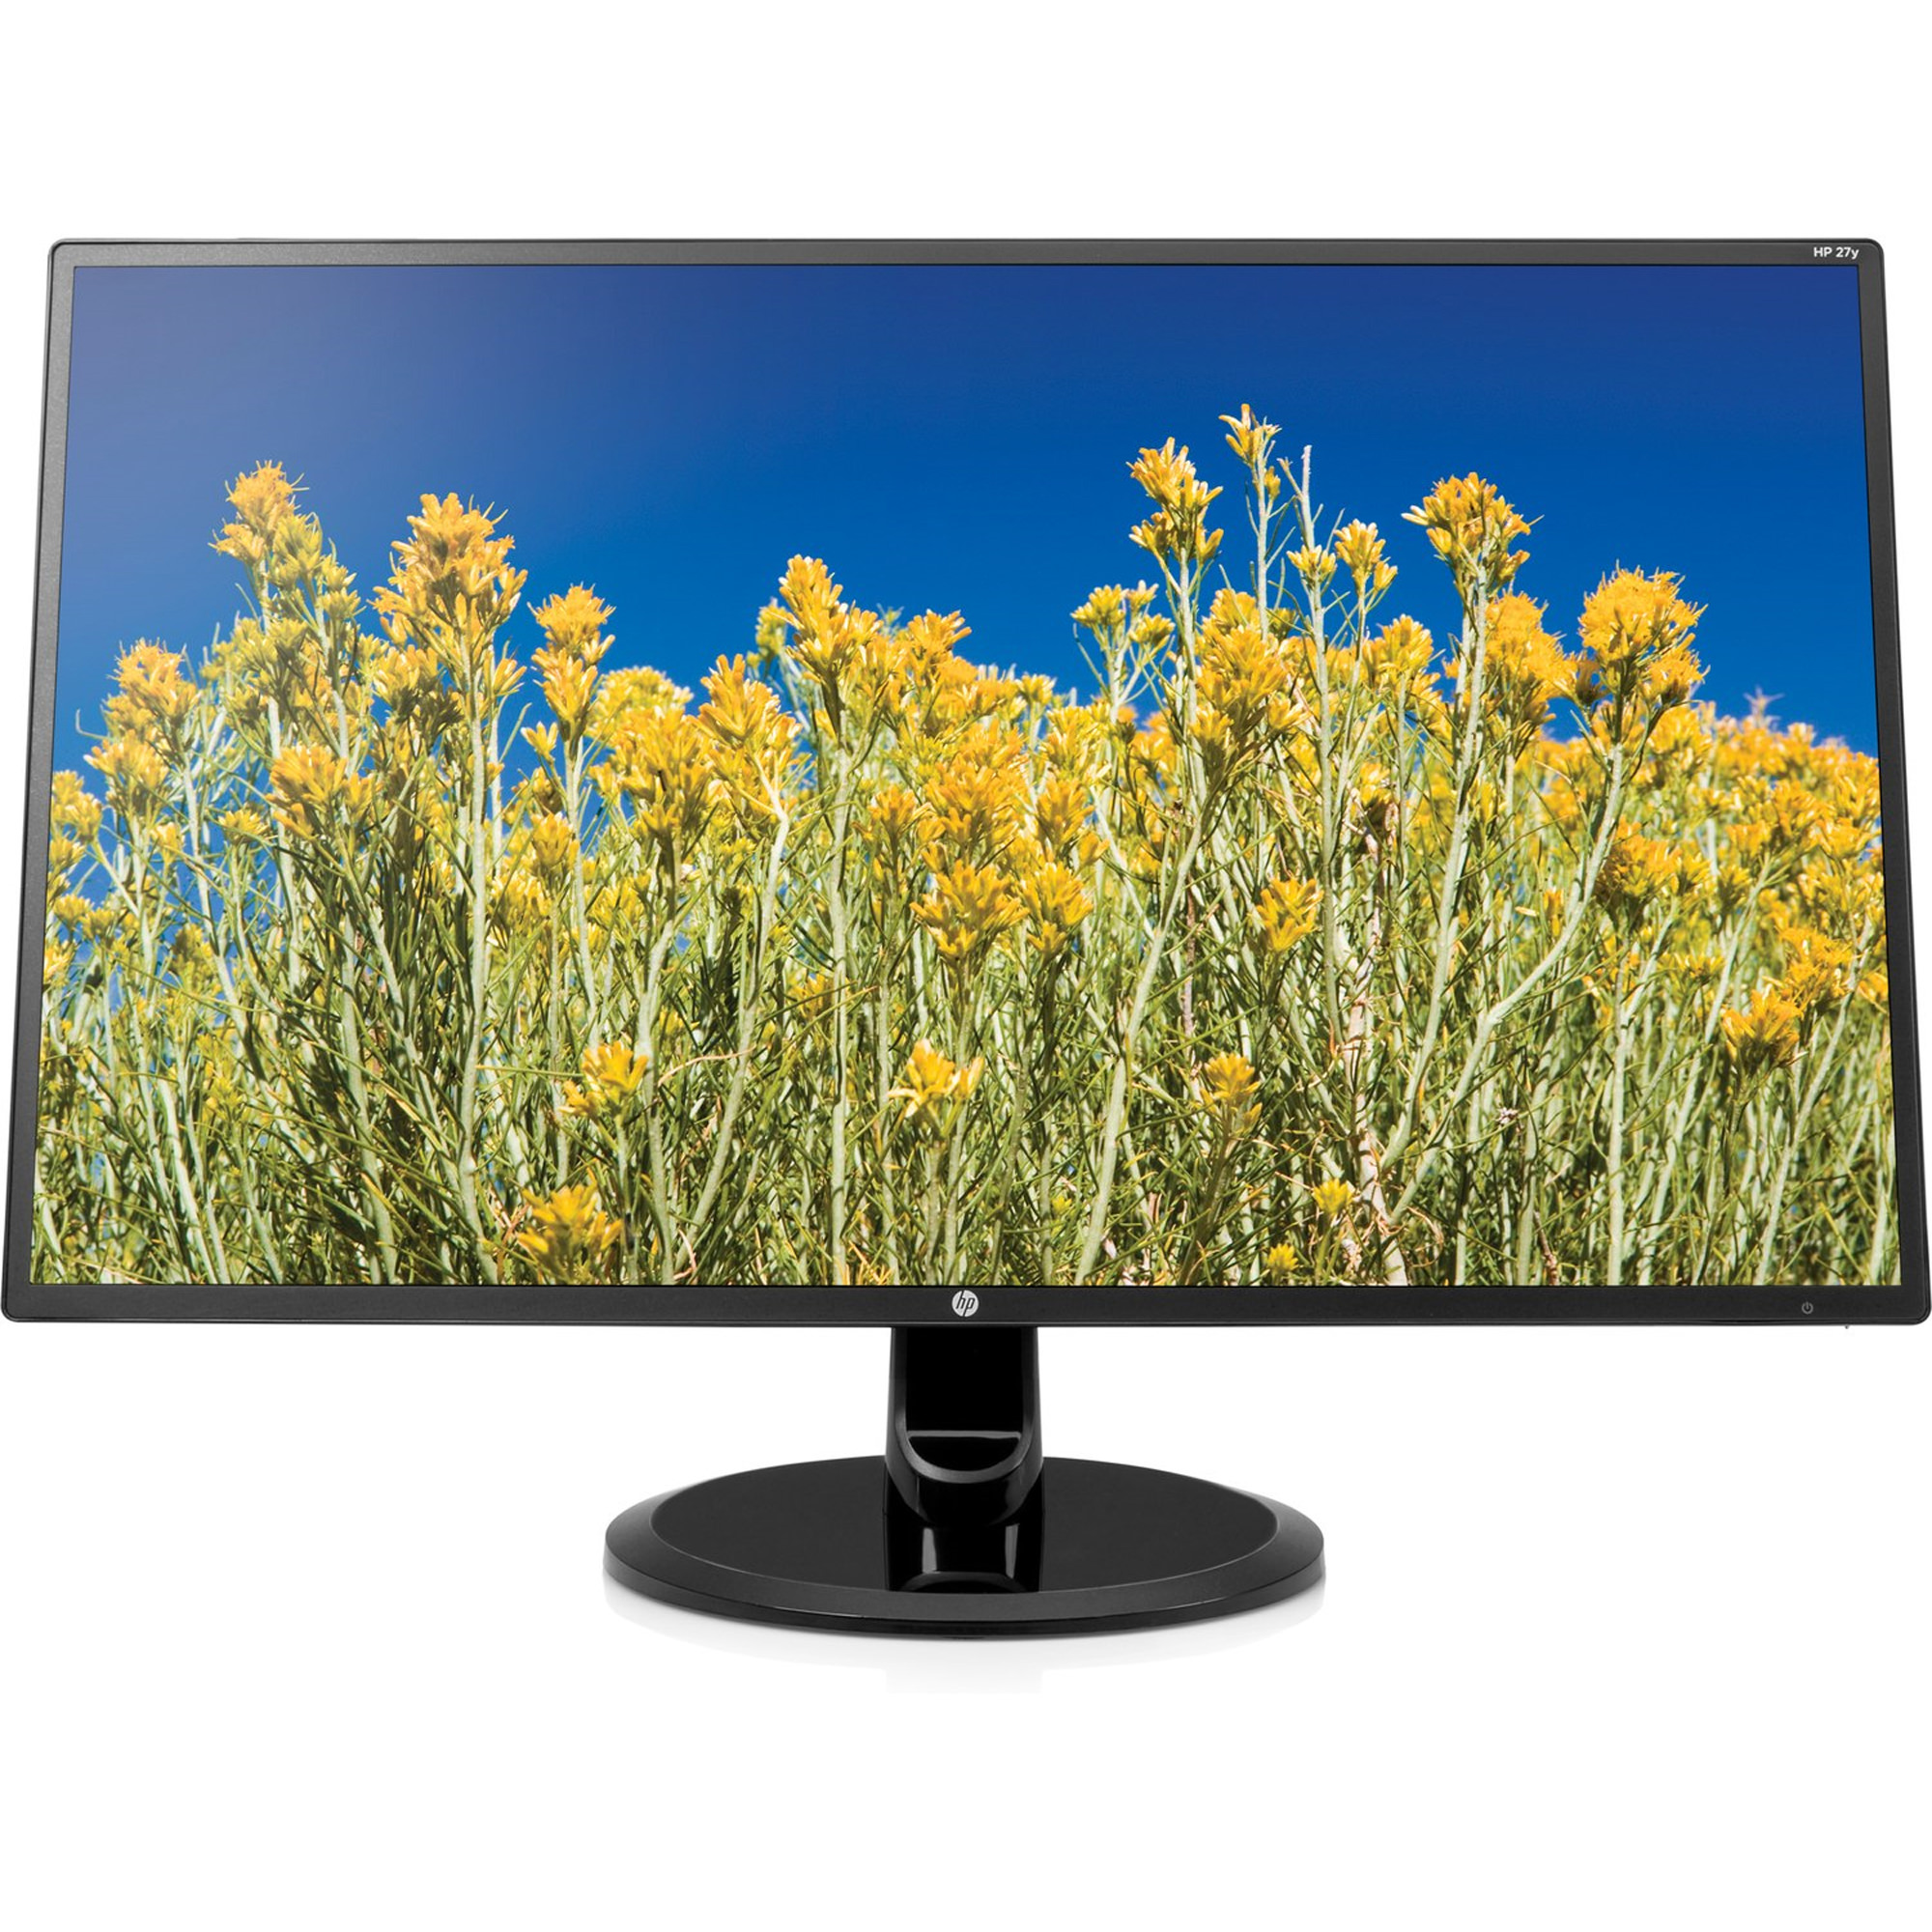 HP 3UA74AA 27 YH 27 inch LED Backlit IPS Monitor with 1920 x 1080 @ 60 Hz Resolution (Full HD)